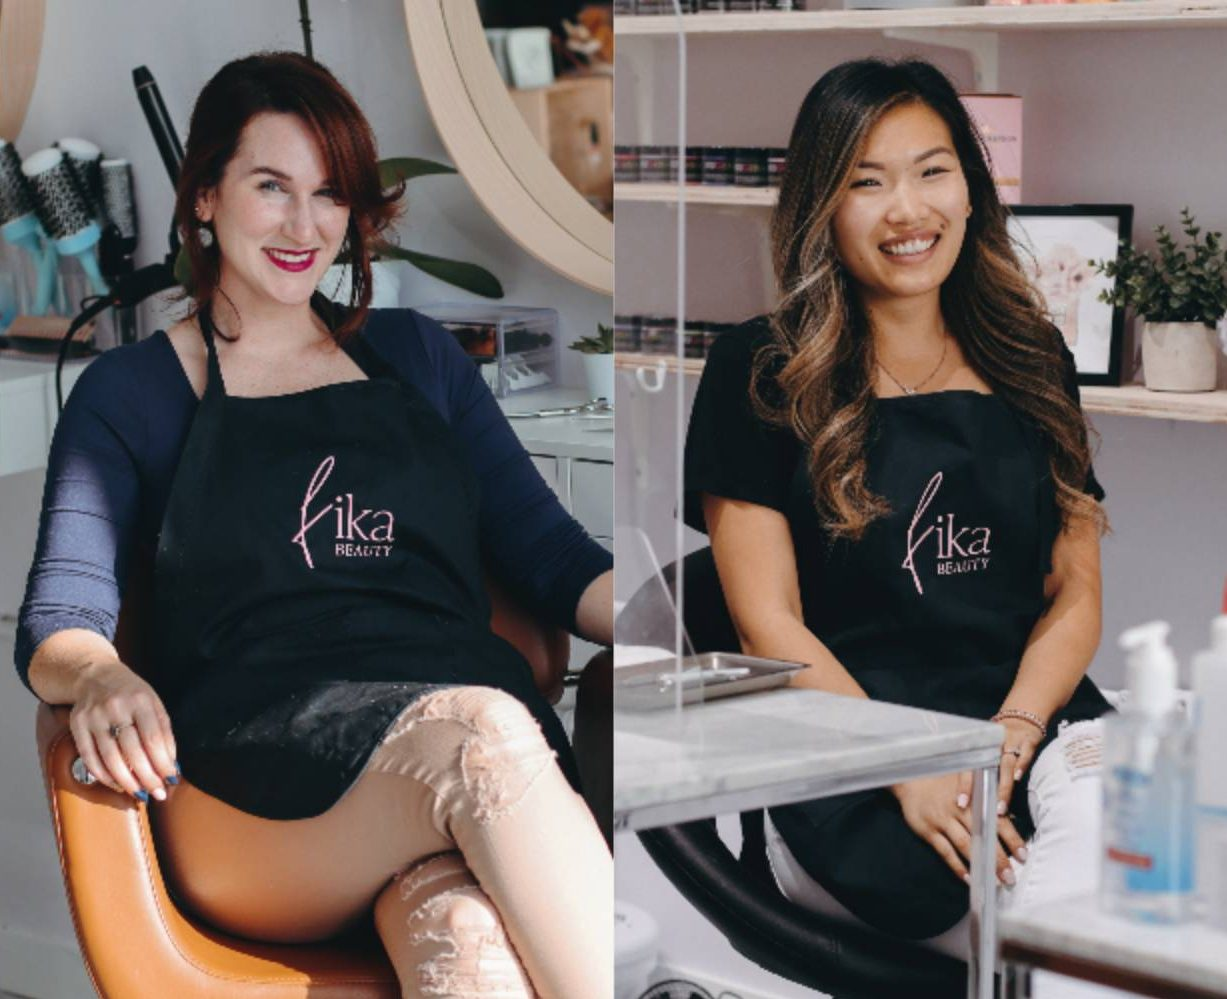 Meet #LeadingLadies Shannon Giang And Annie Lam: Co-Founders Of Ottawa-Based Fika Beauty Studio